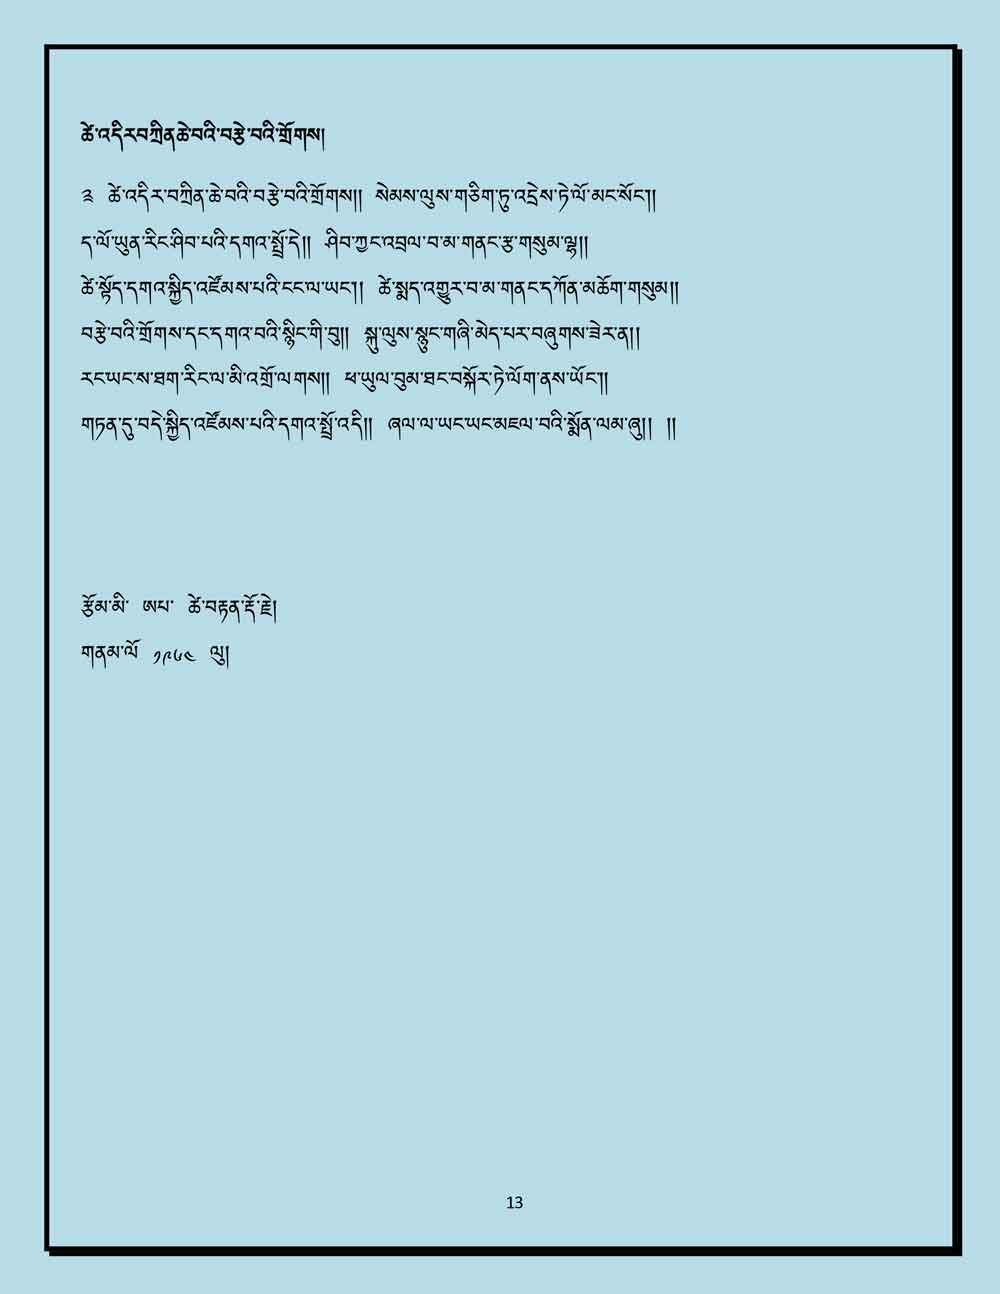 Ap-Tseten-Lyrics-13.jpg